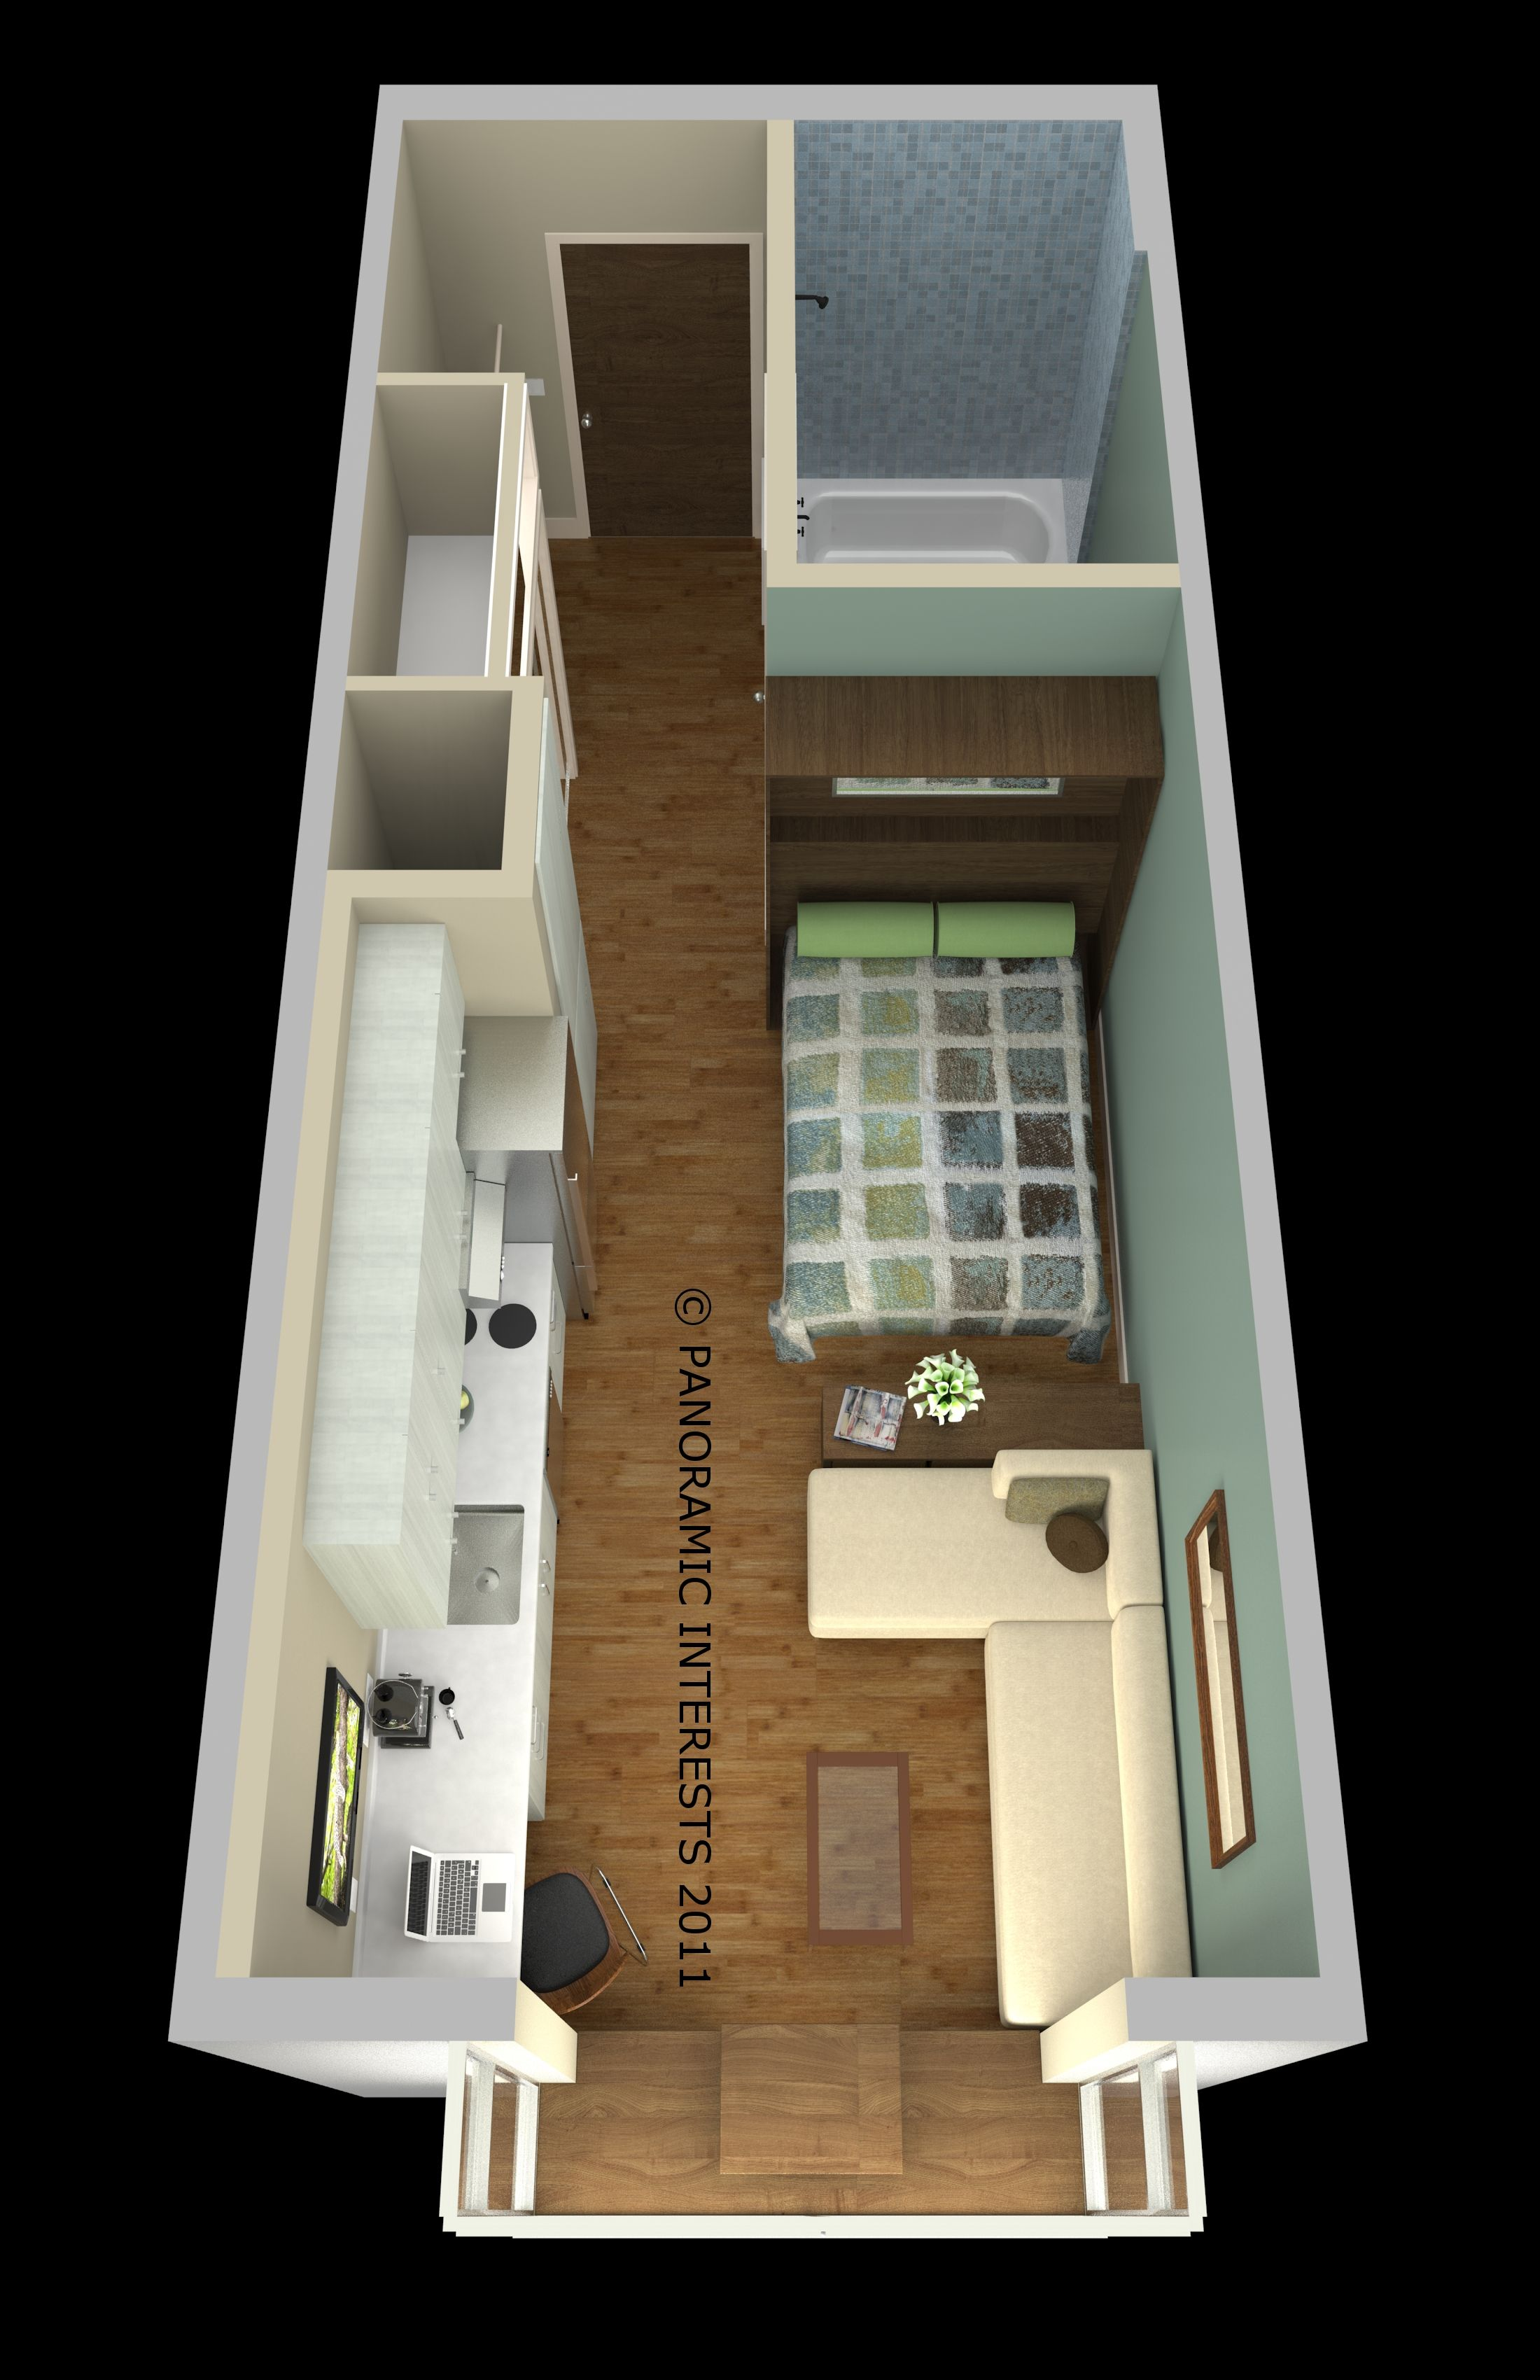 Take that tokyo san francisco approves 220 square foot 250 square foot apartment floor plan